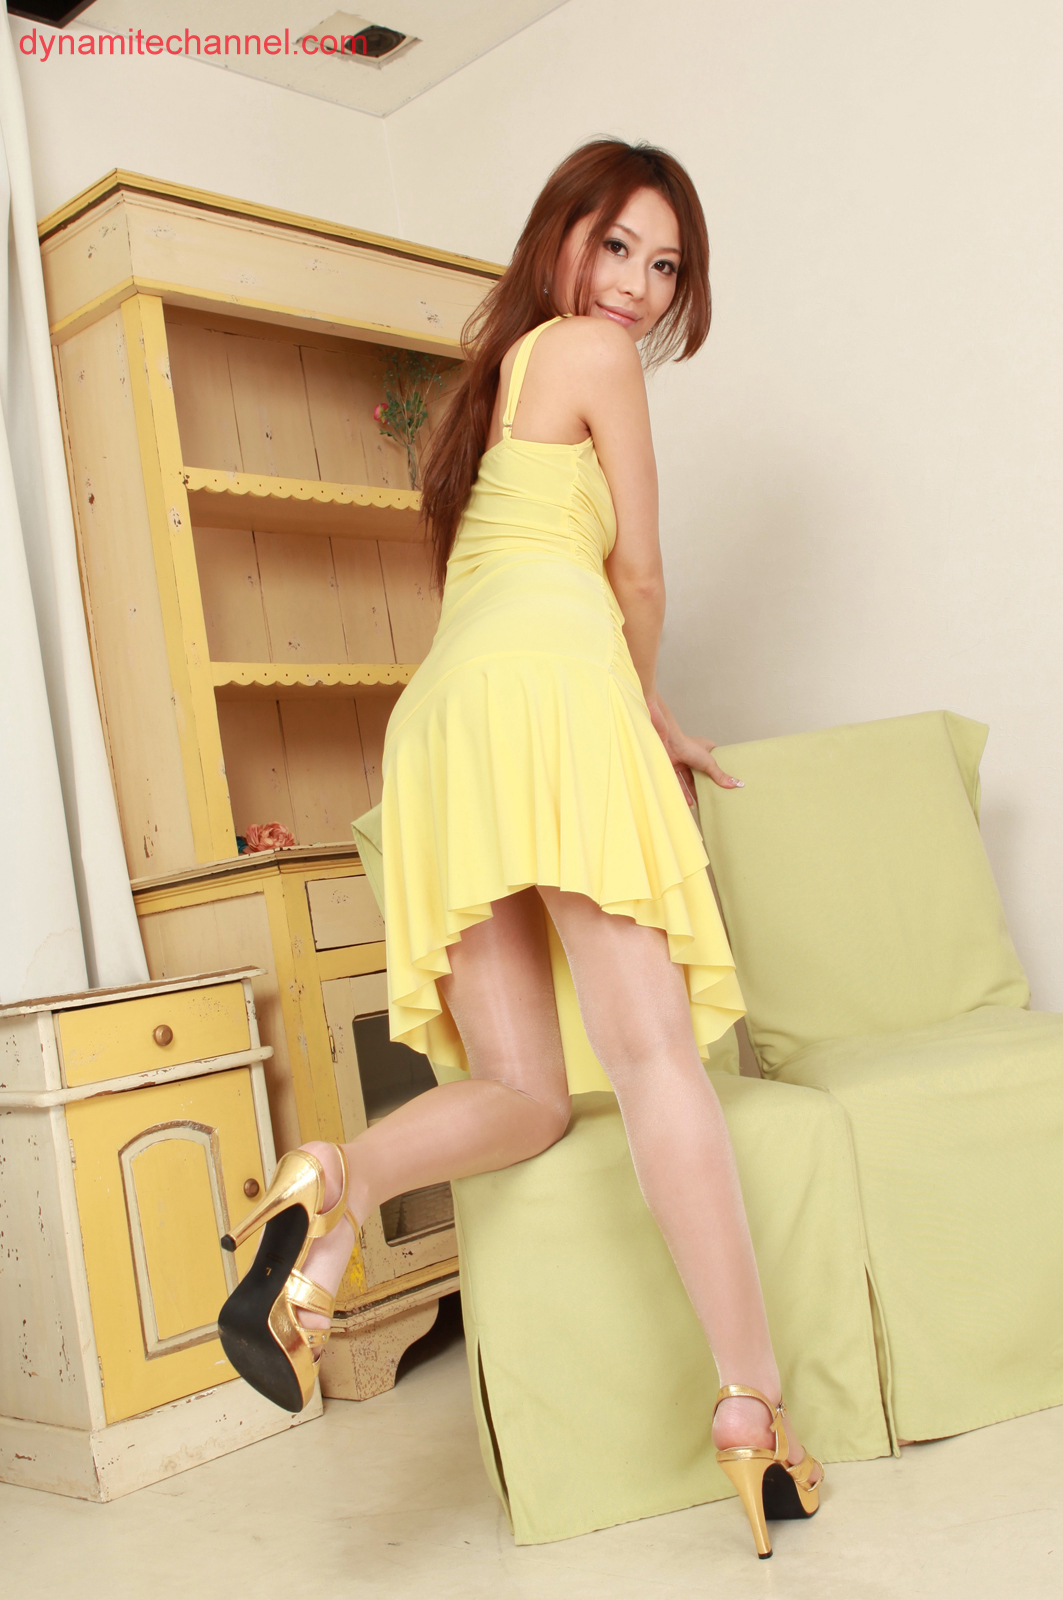 Asakura Japan  City pictures : Mai Asakura Japanese Gravure Idol Sexy Yellow Robe Fashion Photo Shoot ...